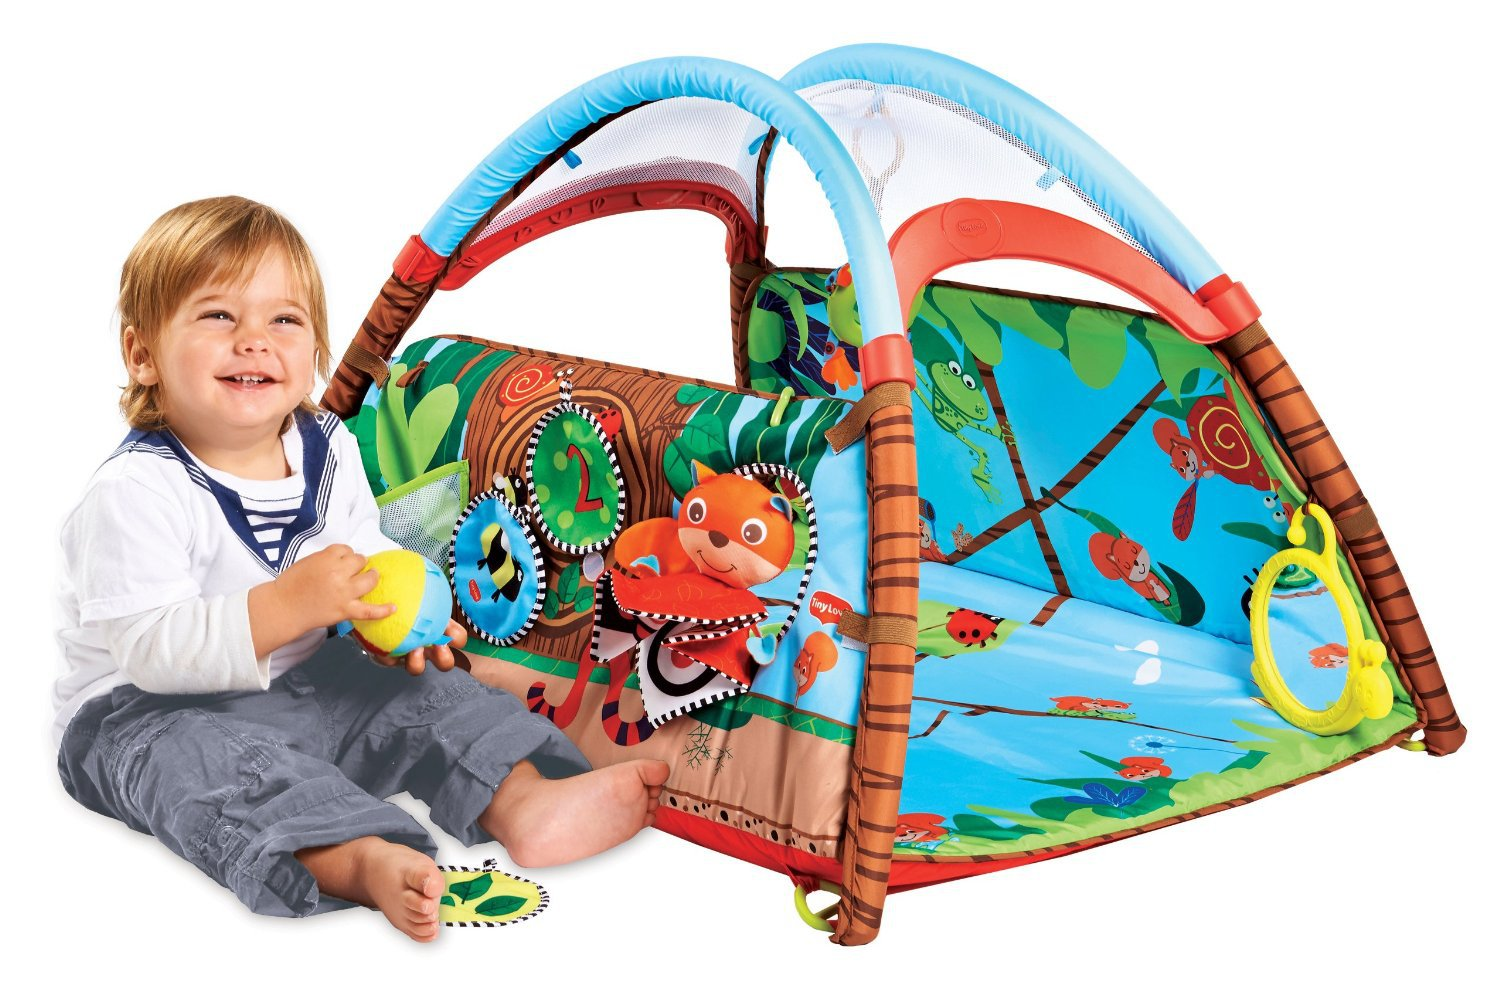 2014 New Works! !Knee Love Quiet Knee Thailand Knee Animal U0026 Play Cognitive  Education Playground Equipment 4way Play Gym In Thailand